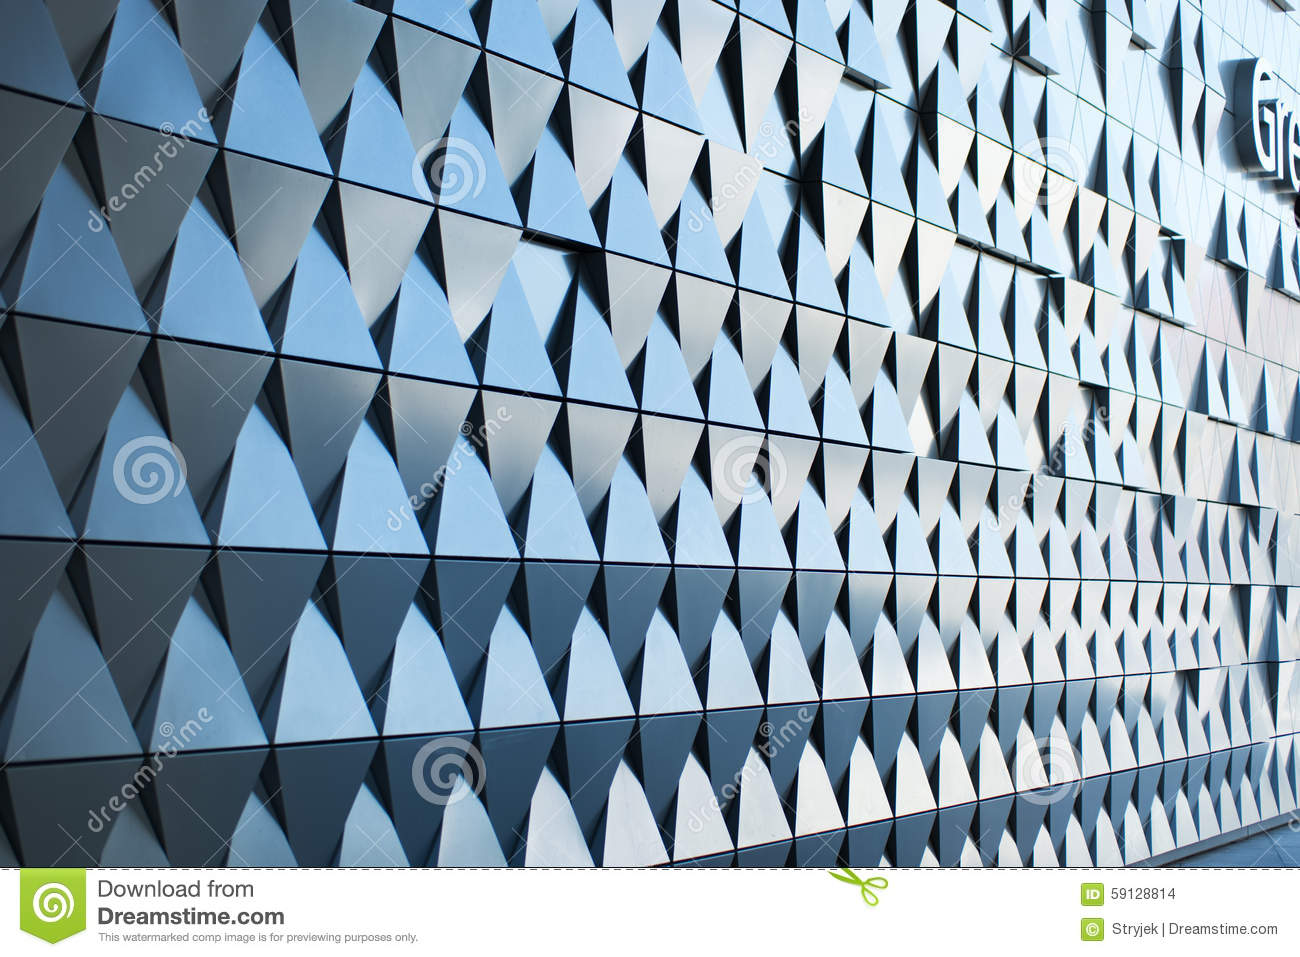 triangular shaped wall design modern architectural - Architectural Wall Design